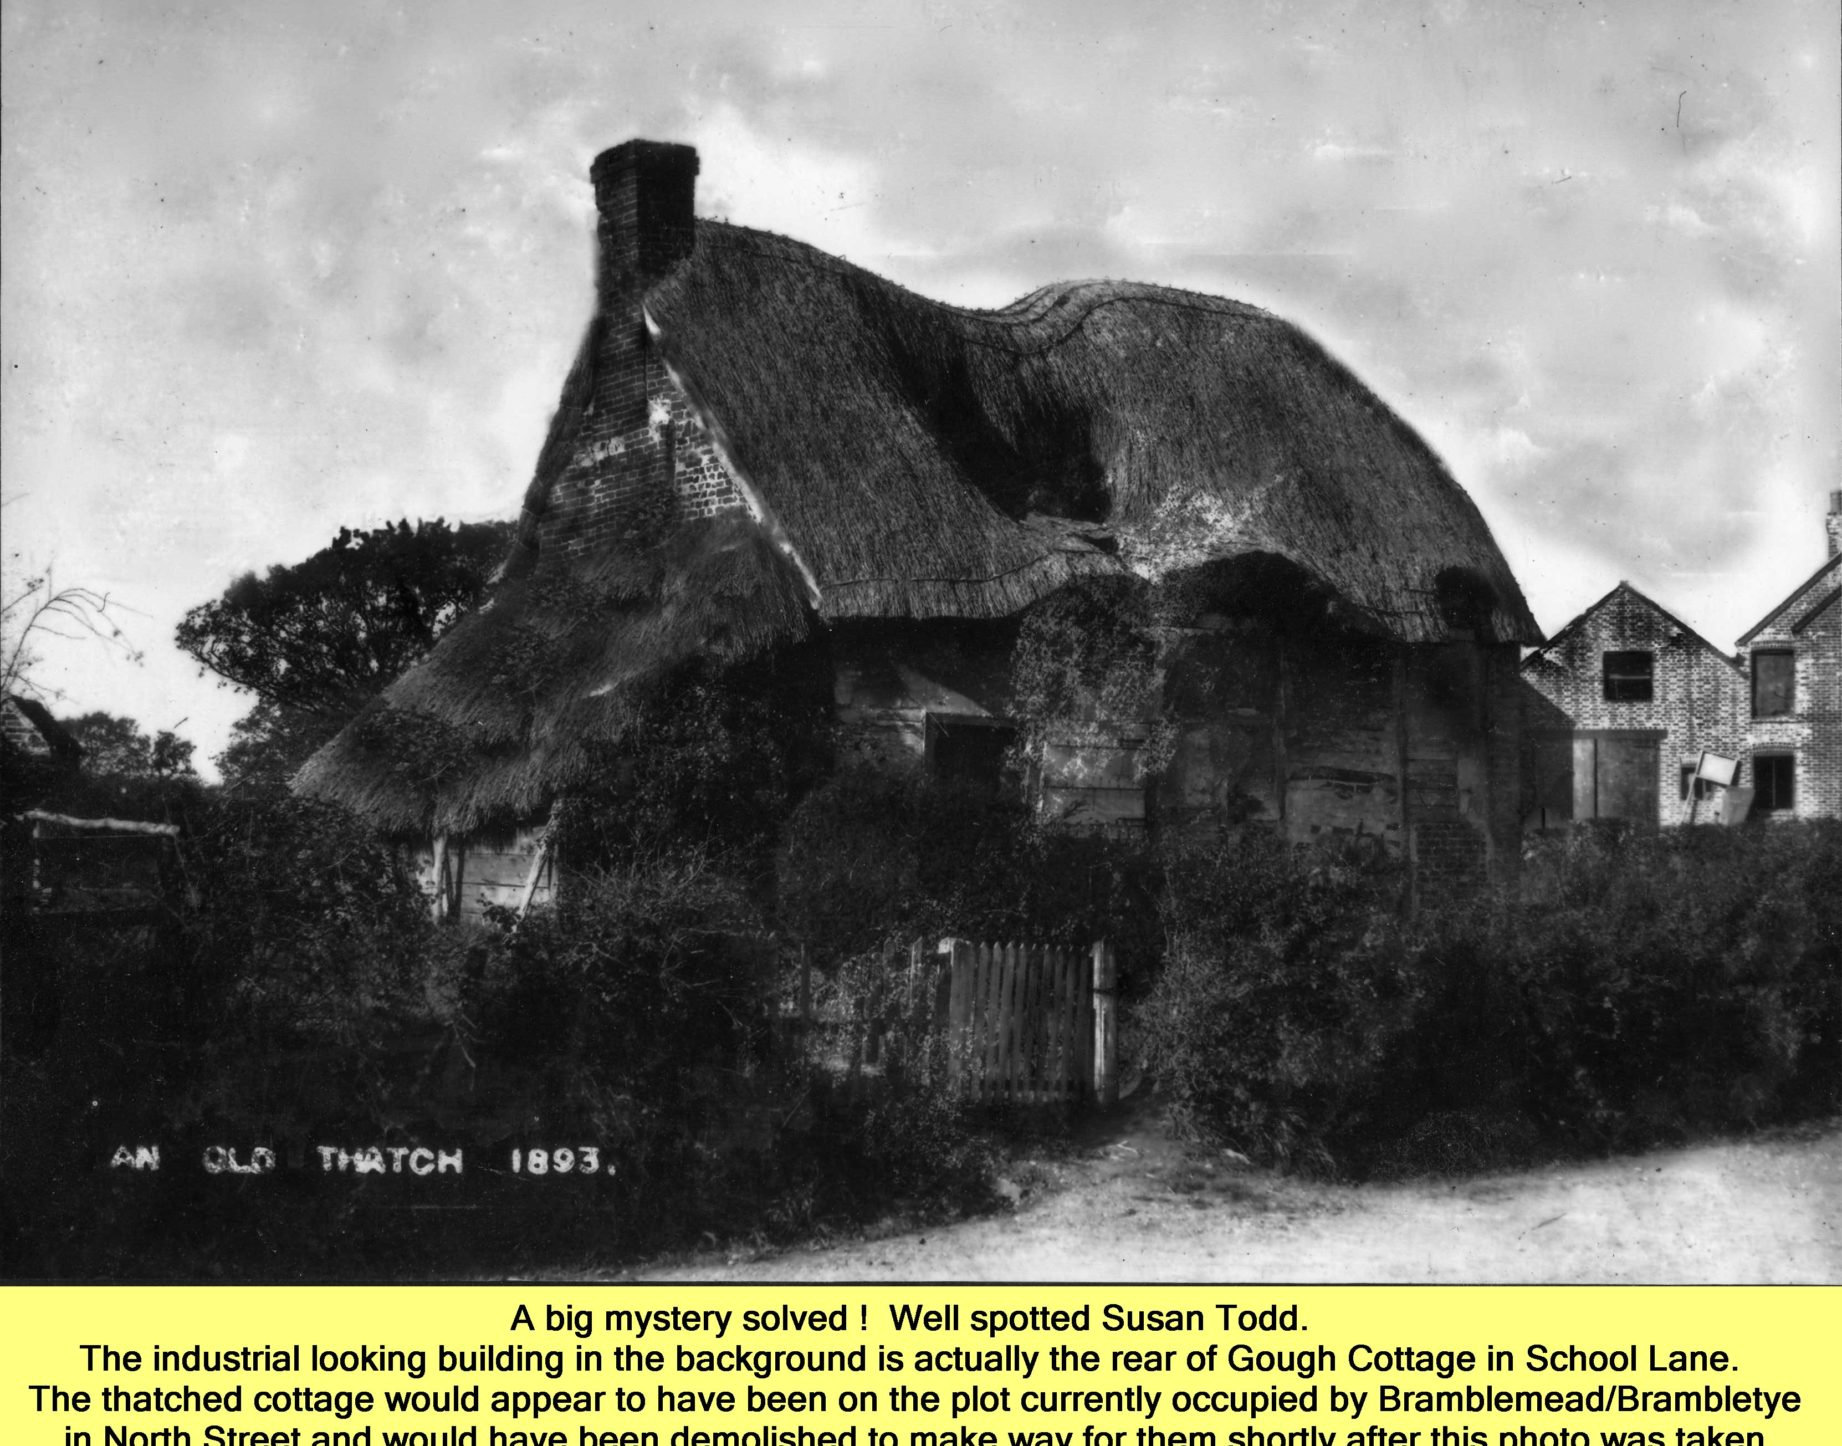 An Old Thatch 1893 North Street